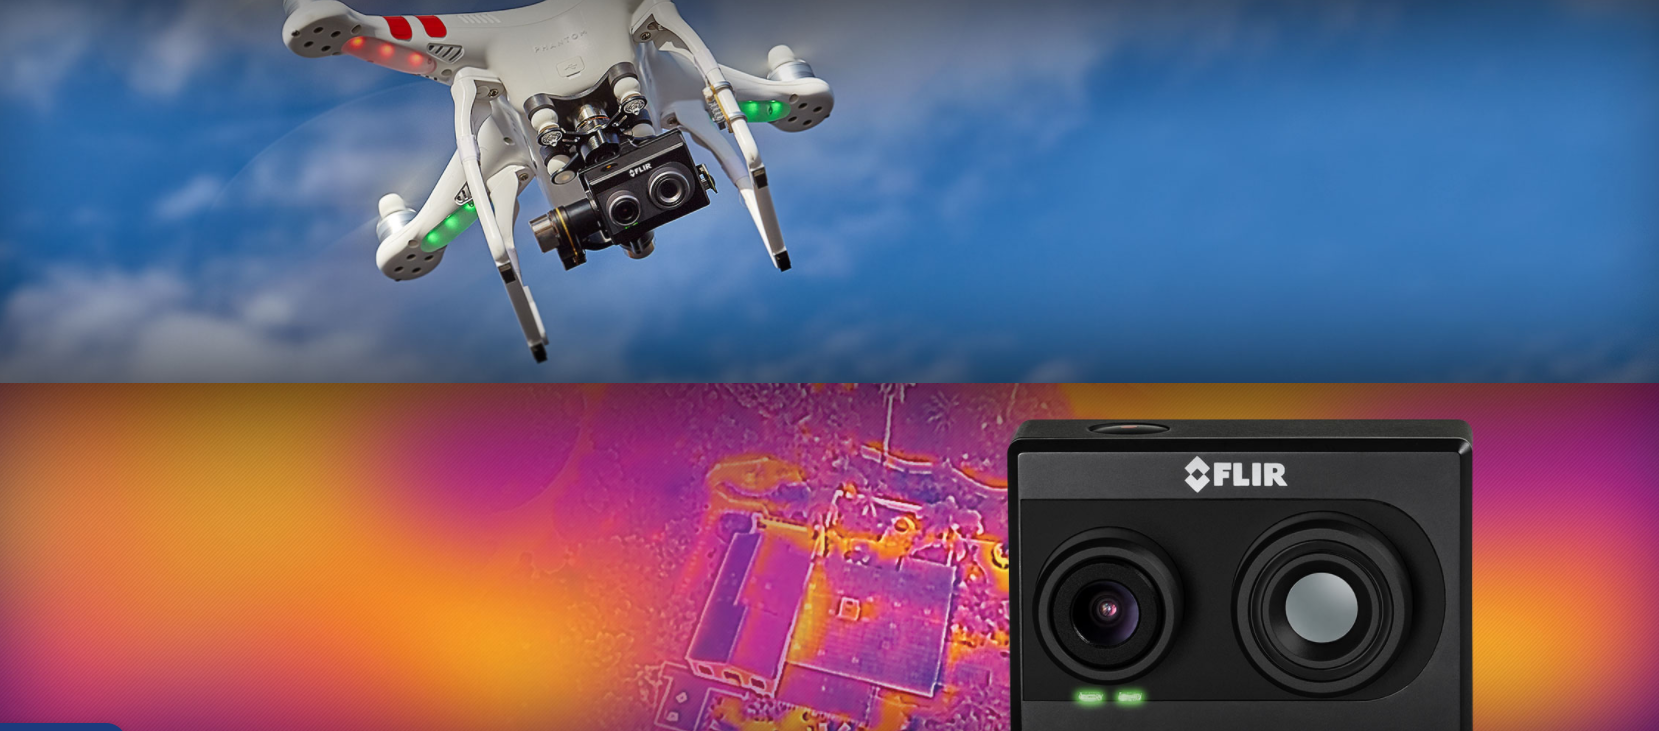 What's the best thermal camera and drone for hog hunting?